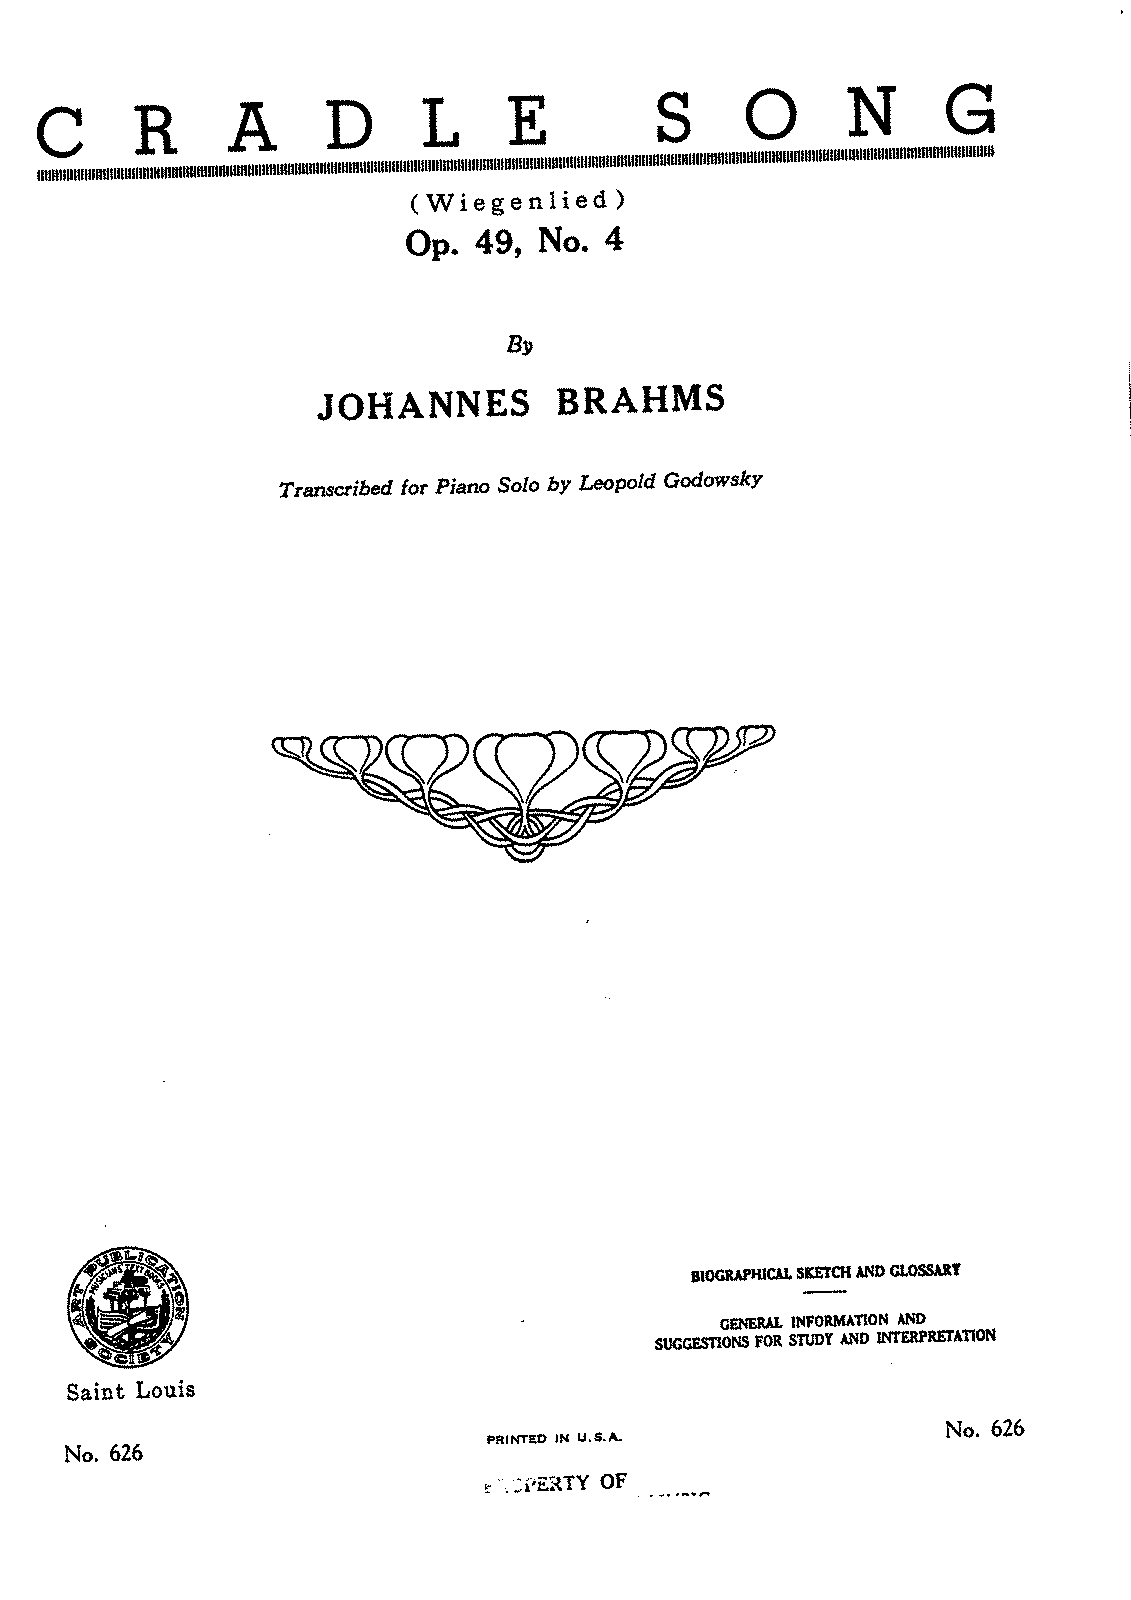 PMLP22223-Godowsky - Brahms' Op.49, No.4, Cradle Song in G major.pdf